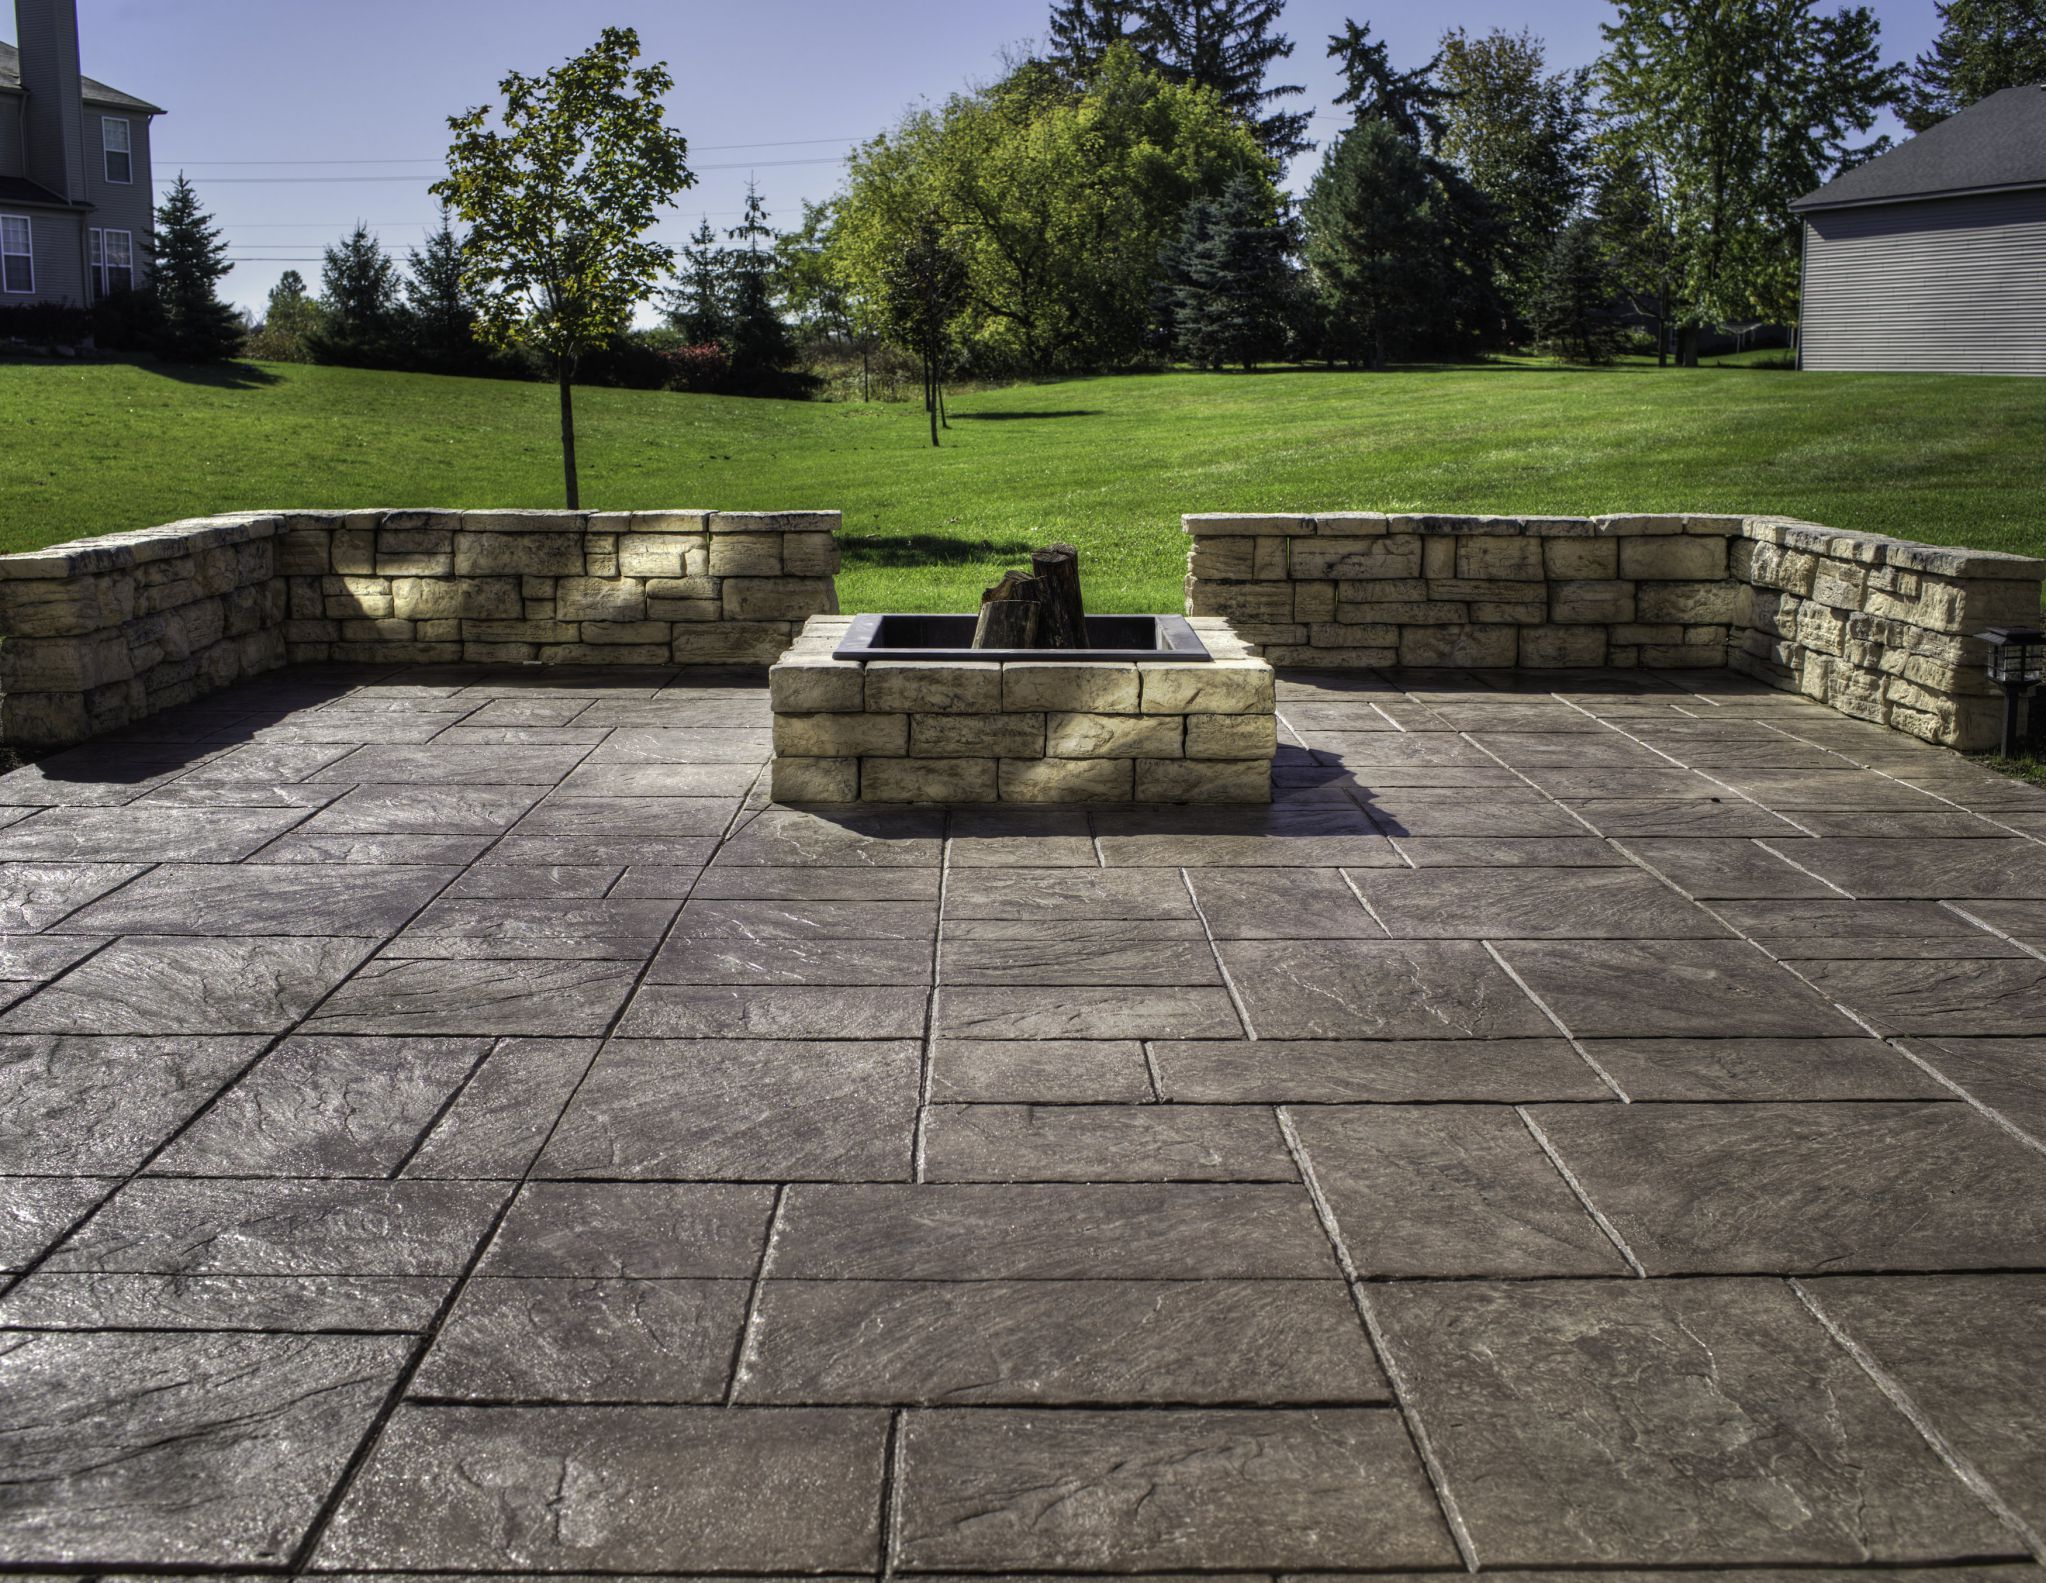 Delightful Spacious Outdoor Area Using Stamped Concrete Patio With Square Stone Fire  Pit Facing Grass Yard